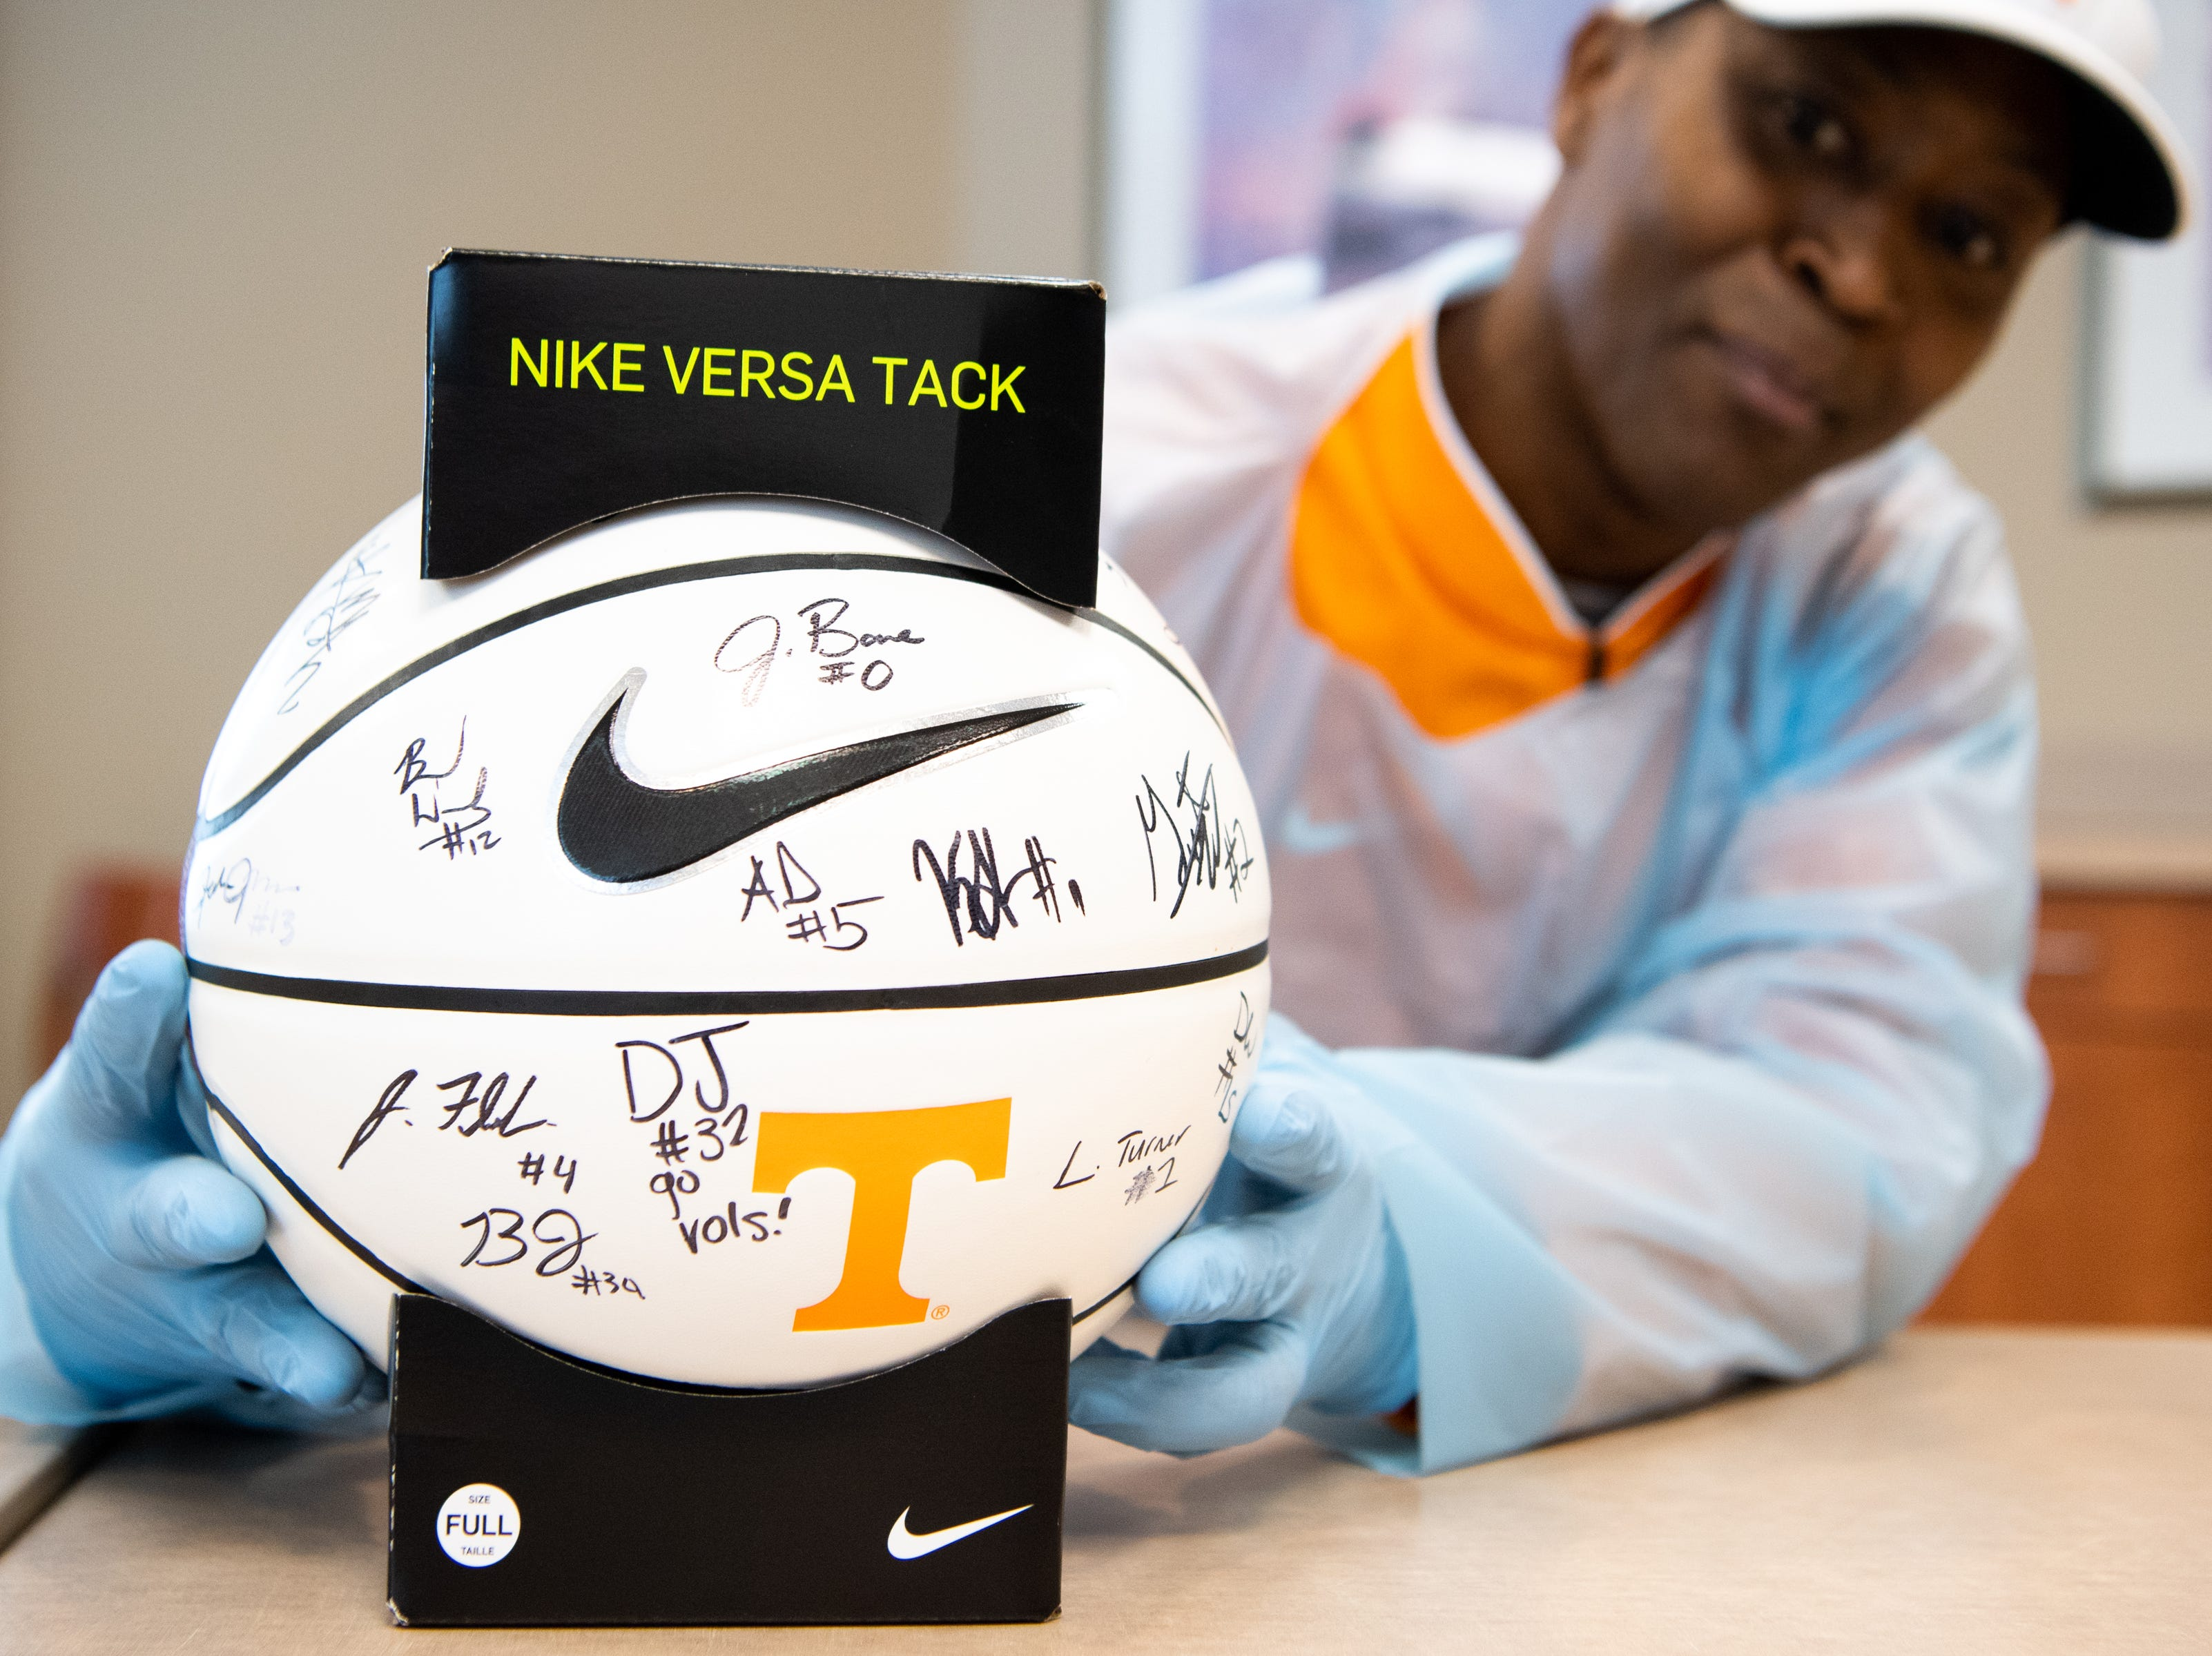 Former UT player Tony White, who is battling leukemia, grabs the basketball which was signed by the Tennessee Volunteers men's basketball team at Sarah Cannon Cancer Institute at TriStar Centennial on Thursday, March 14, 2019, in Nashville, Tenn.